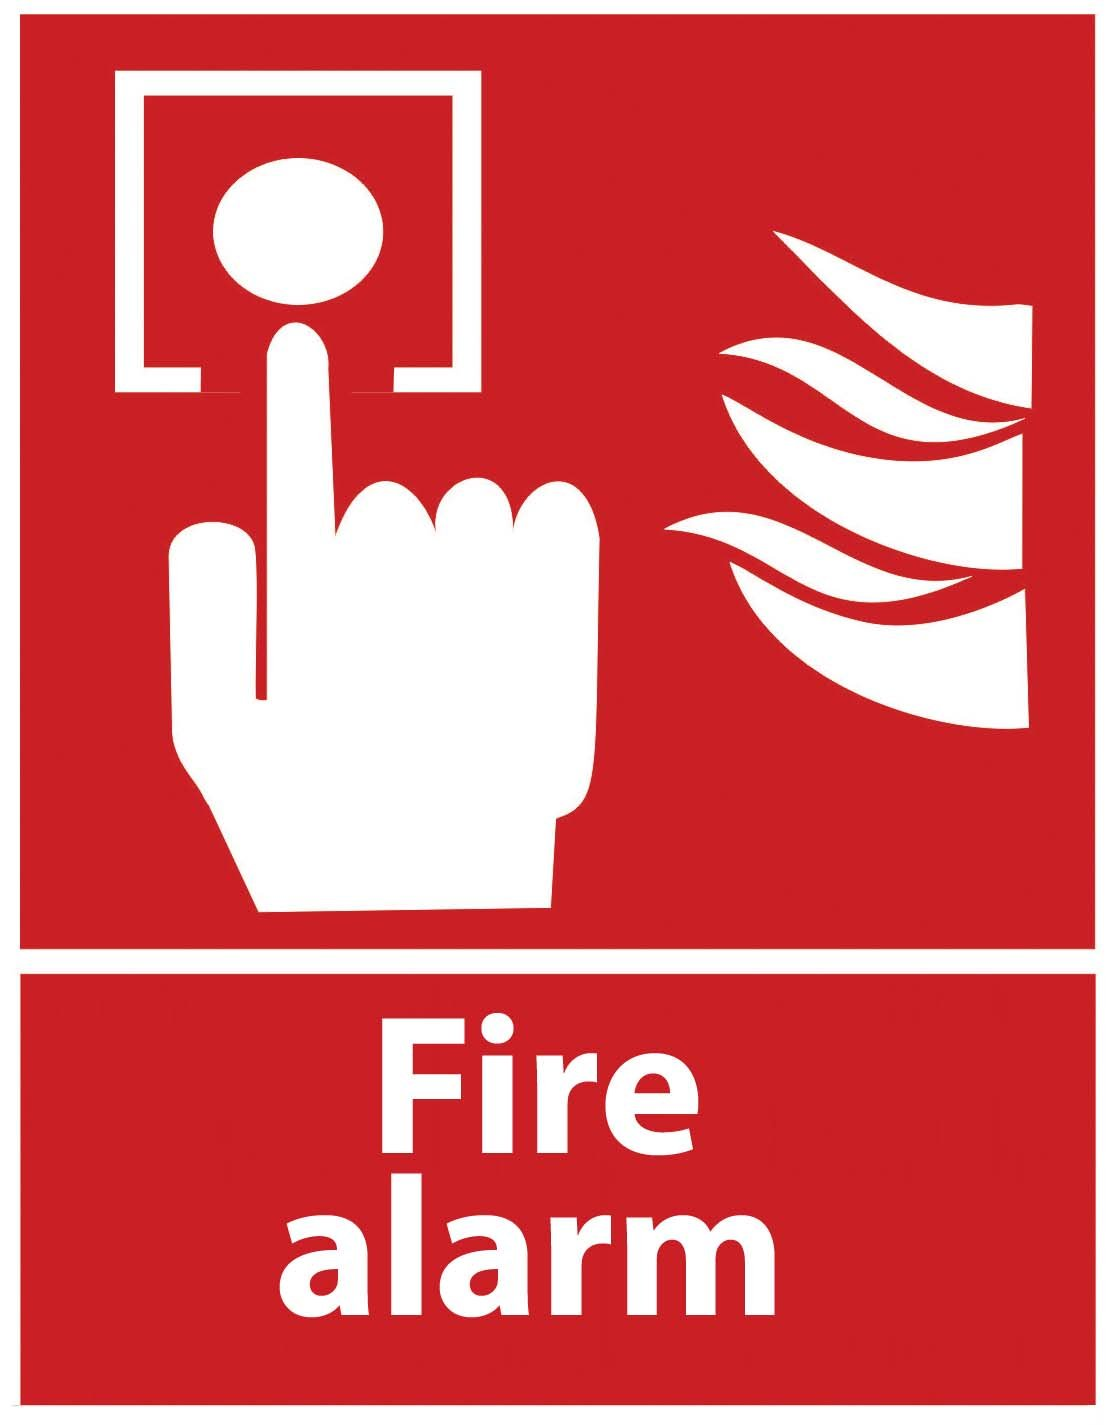 """ZING 1904S Zing Safety Sign, Fire Alarm with Picto, 10"""" Height x 7"""" Width, Recycled Polystyrene Self Adhesive,White on Red"""